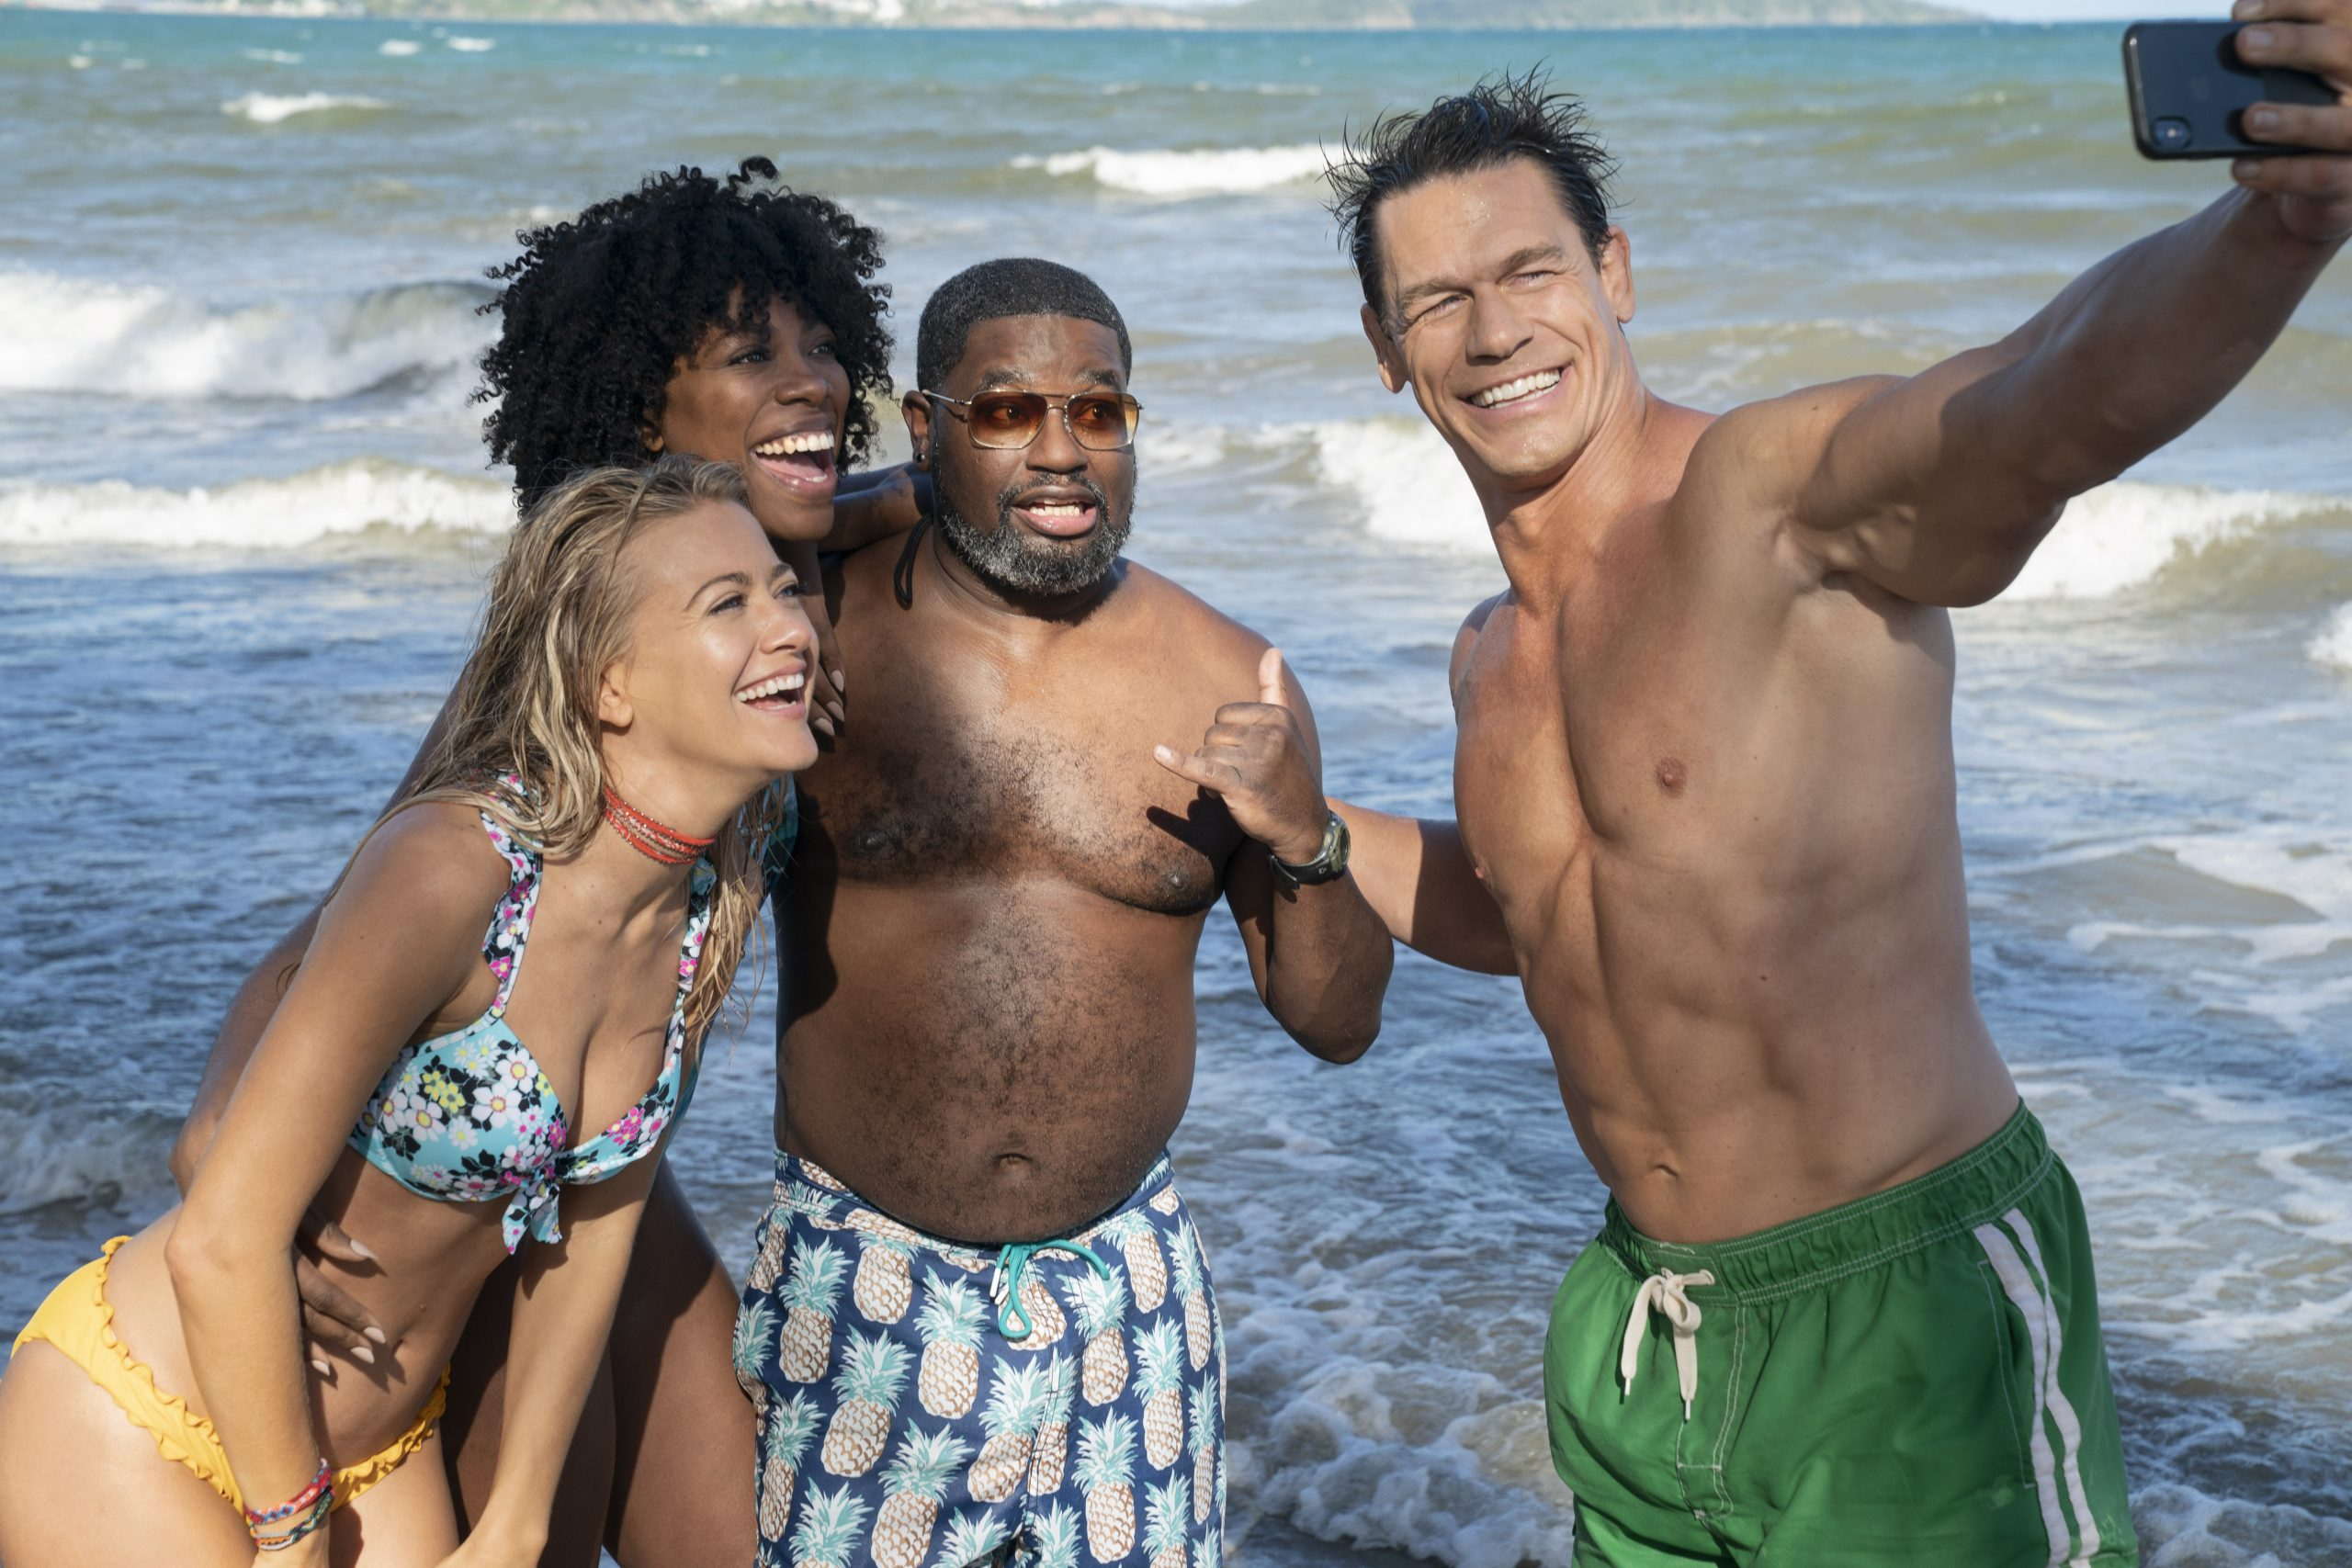 New Movie: Vacation Friends Starring Lil Rel Howery & John Cena